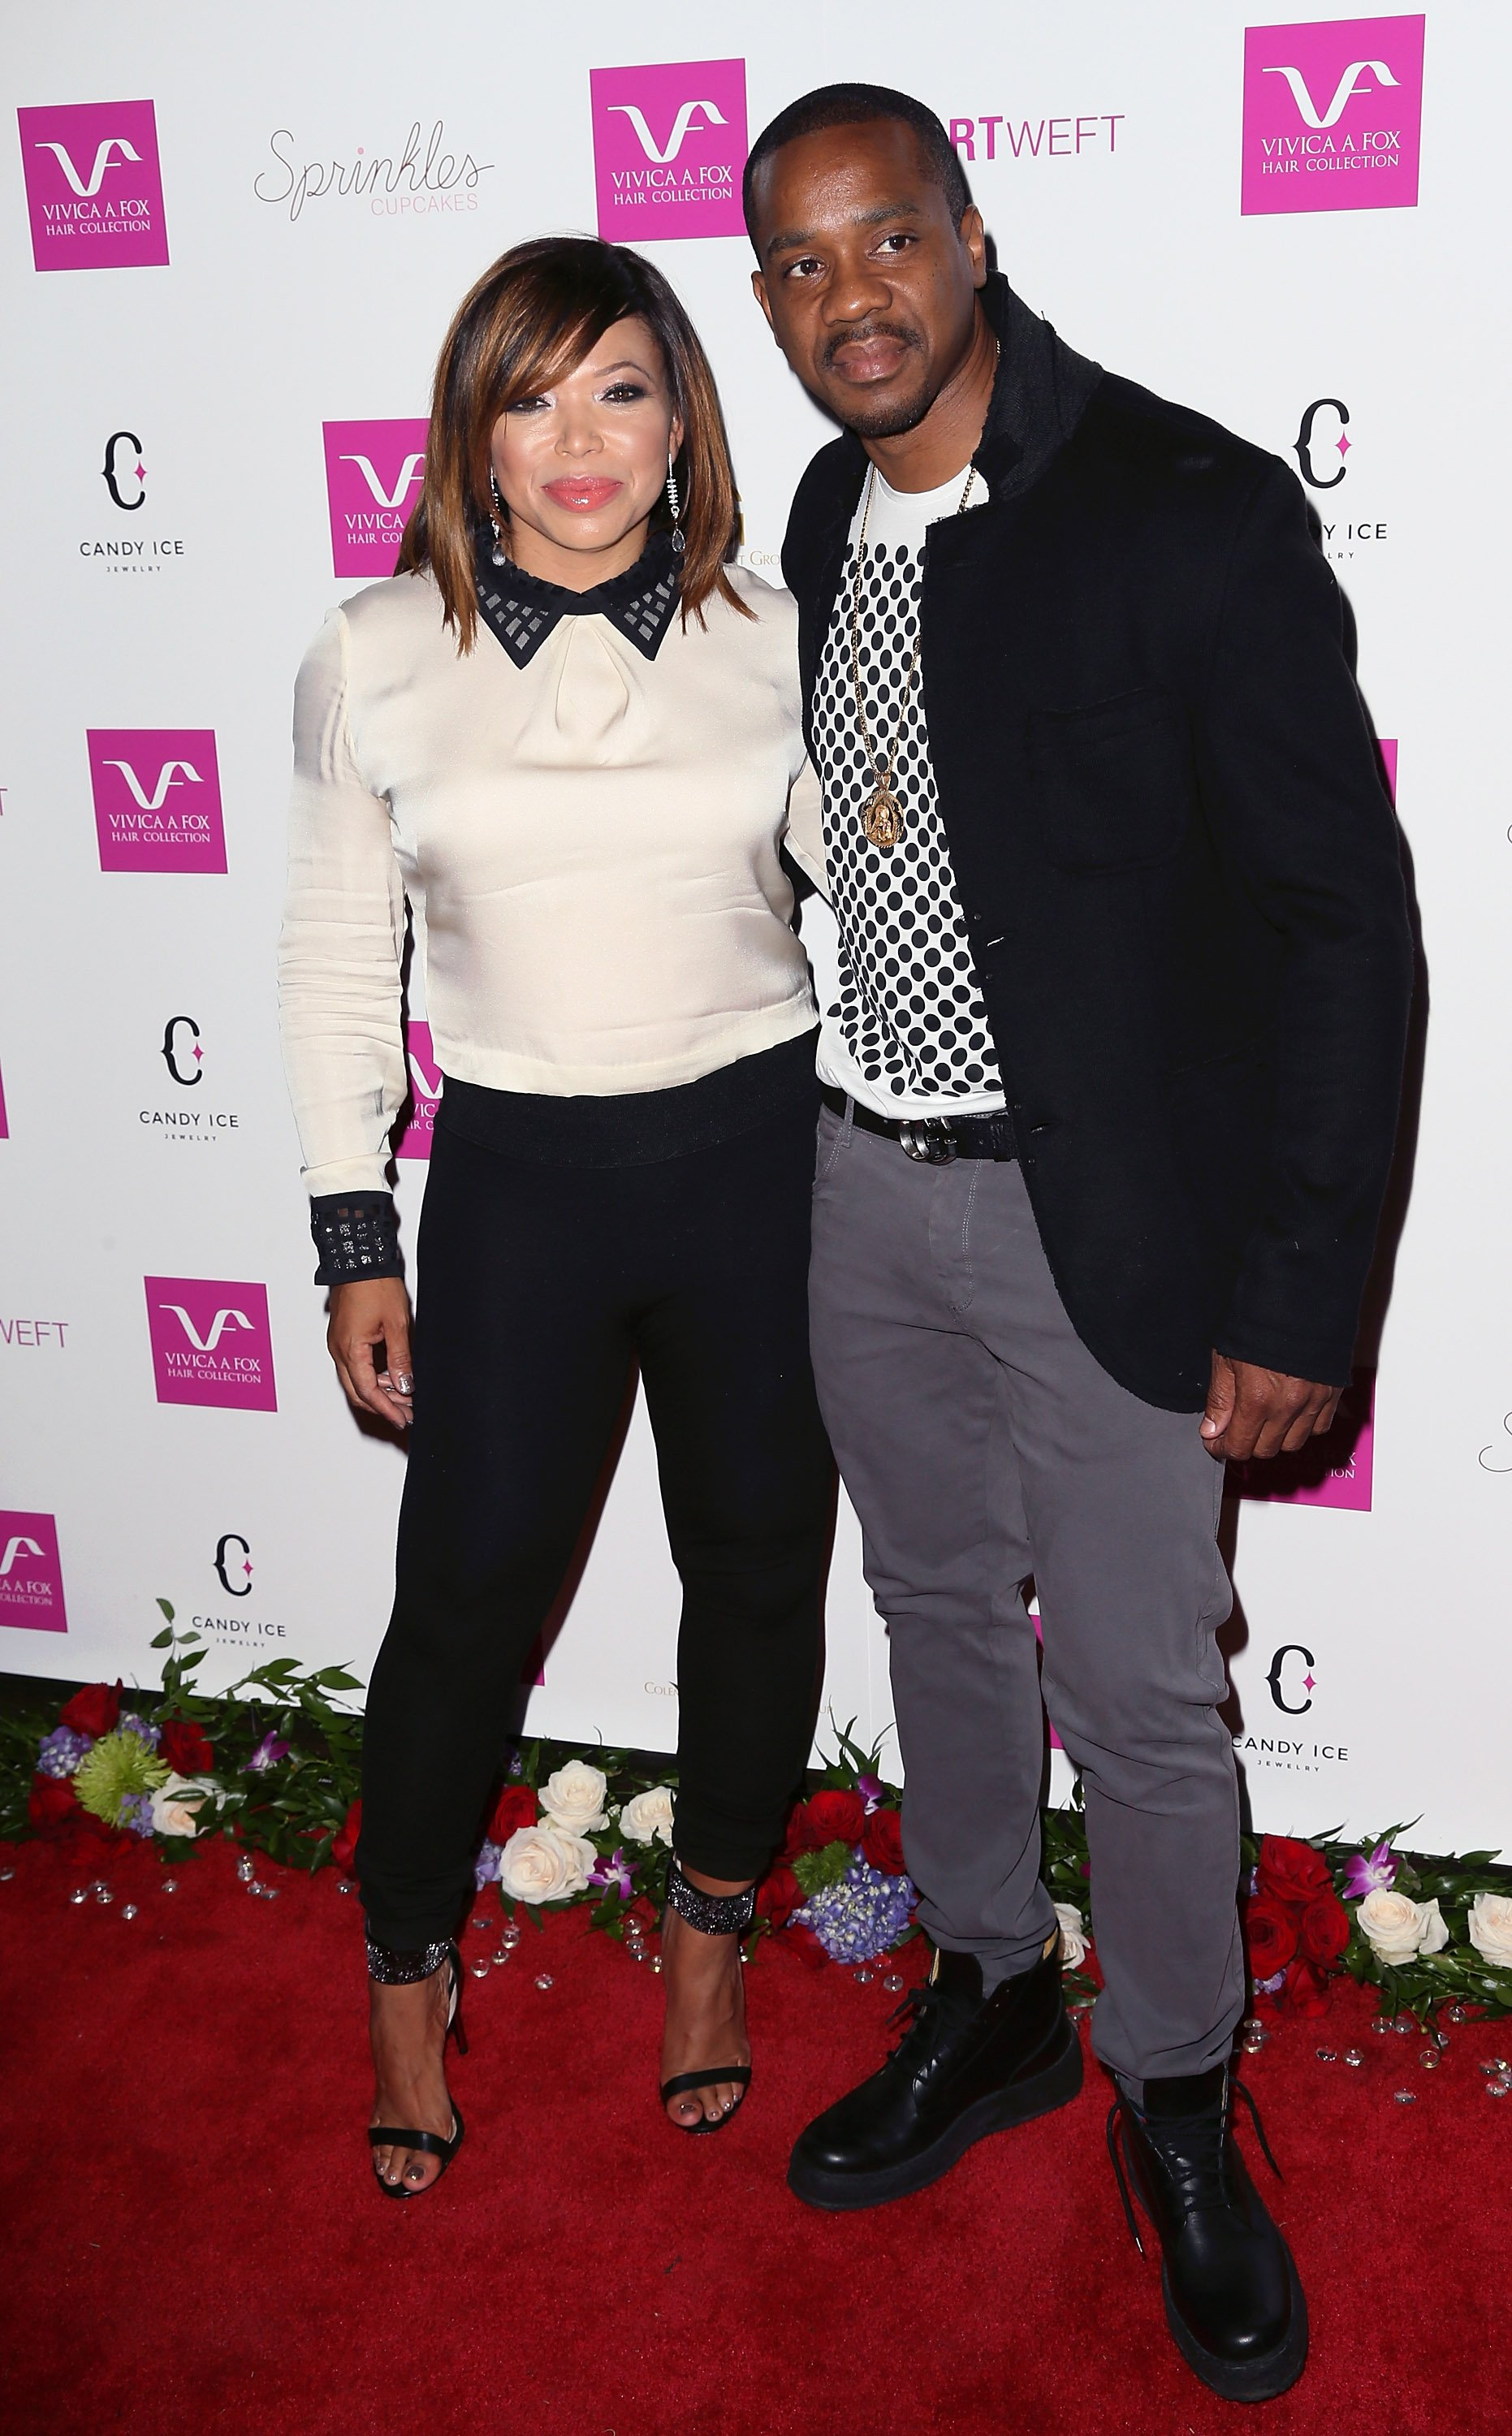 Tisha Campbell-Martin and Duane Martin on August 2, 2014 in Beverly Hills, California | Photo: Getty Images